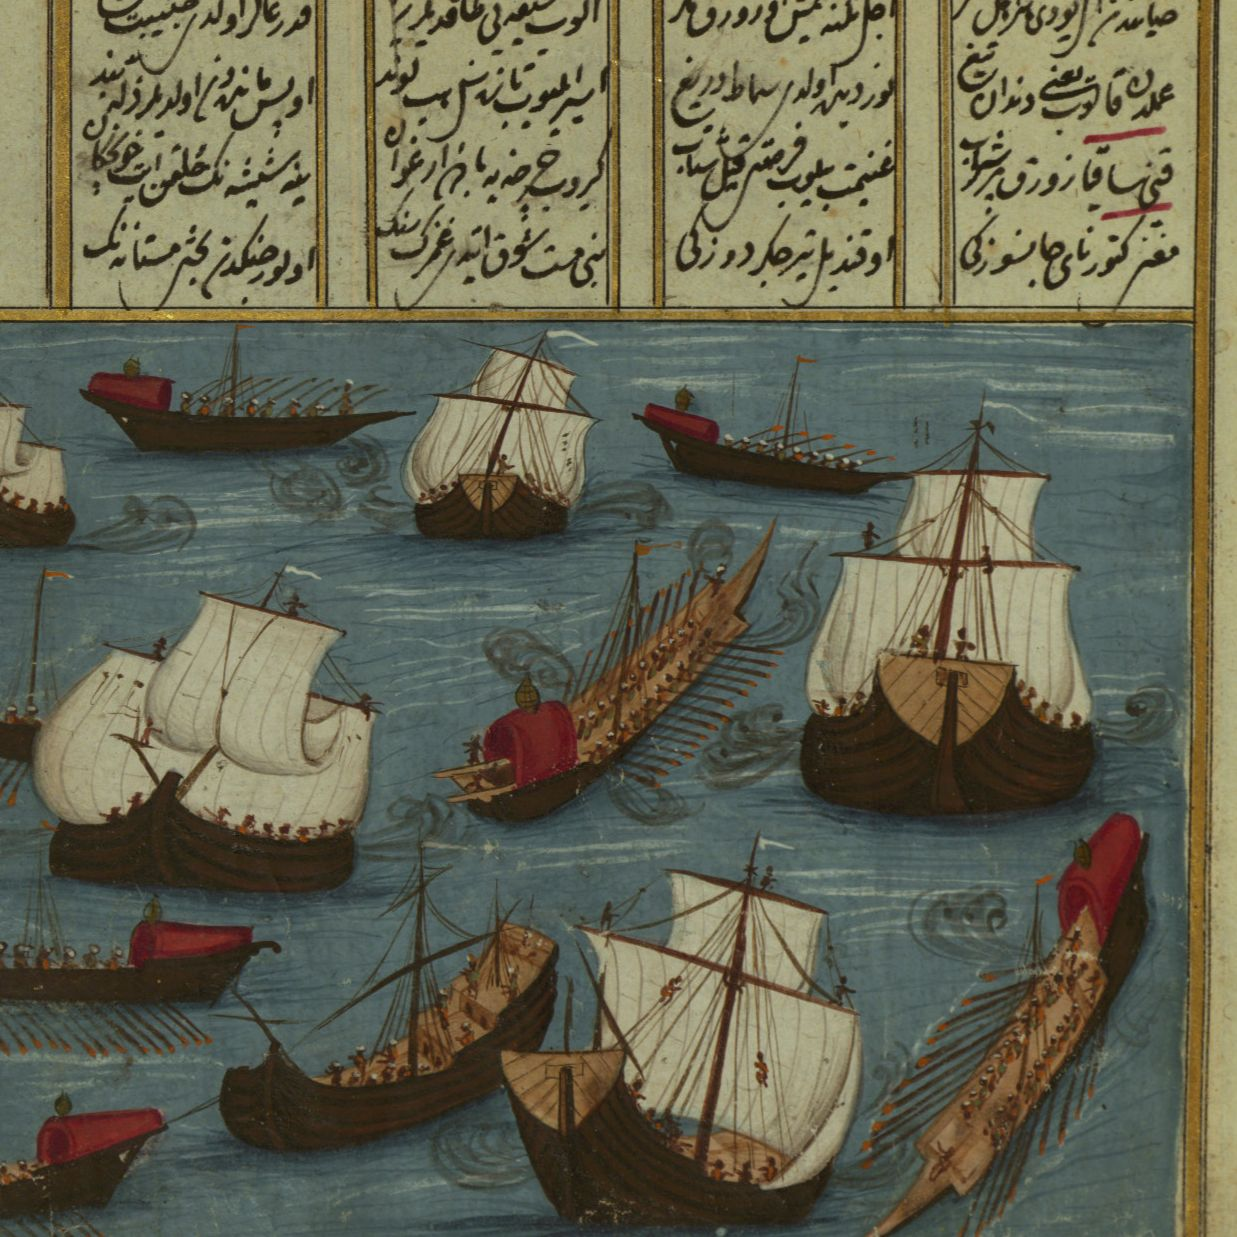 The Mediterranean in the Age of Global Piracy